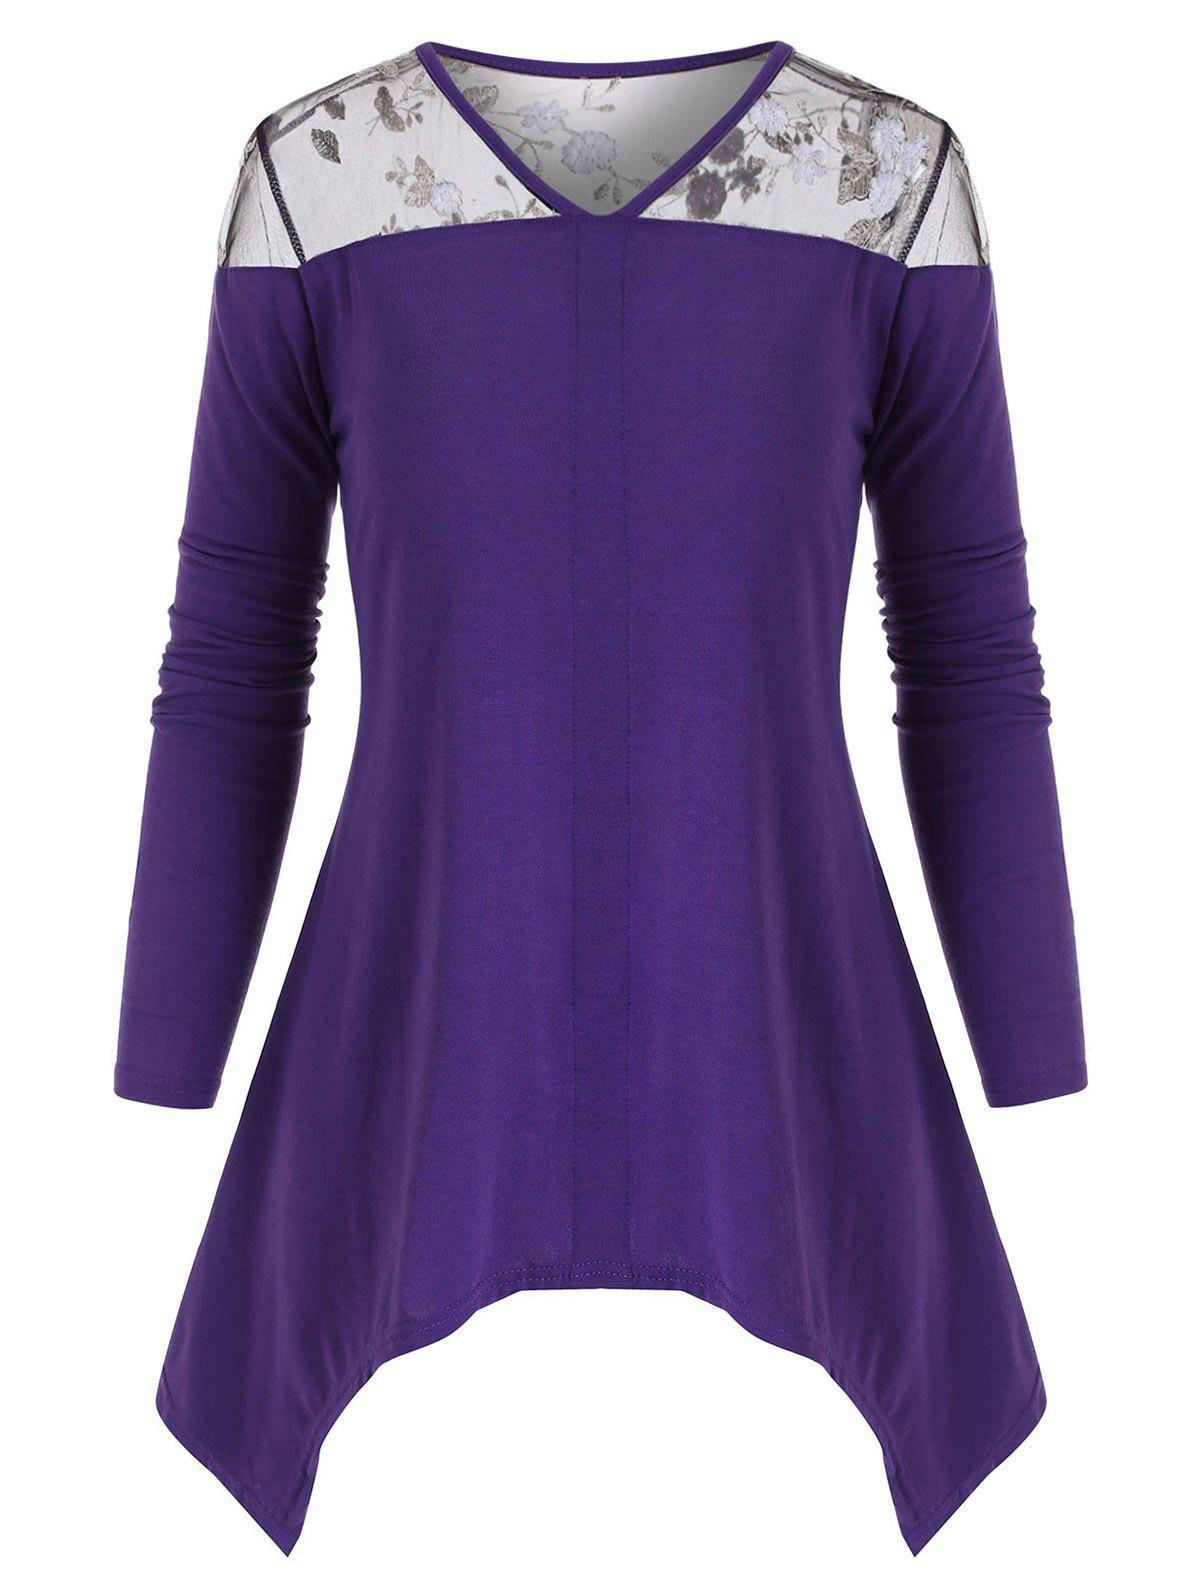 Floral Embroidered Mesh Panel Asymmetric Top - PURPLE AMETHYST L